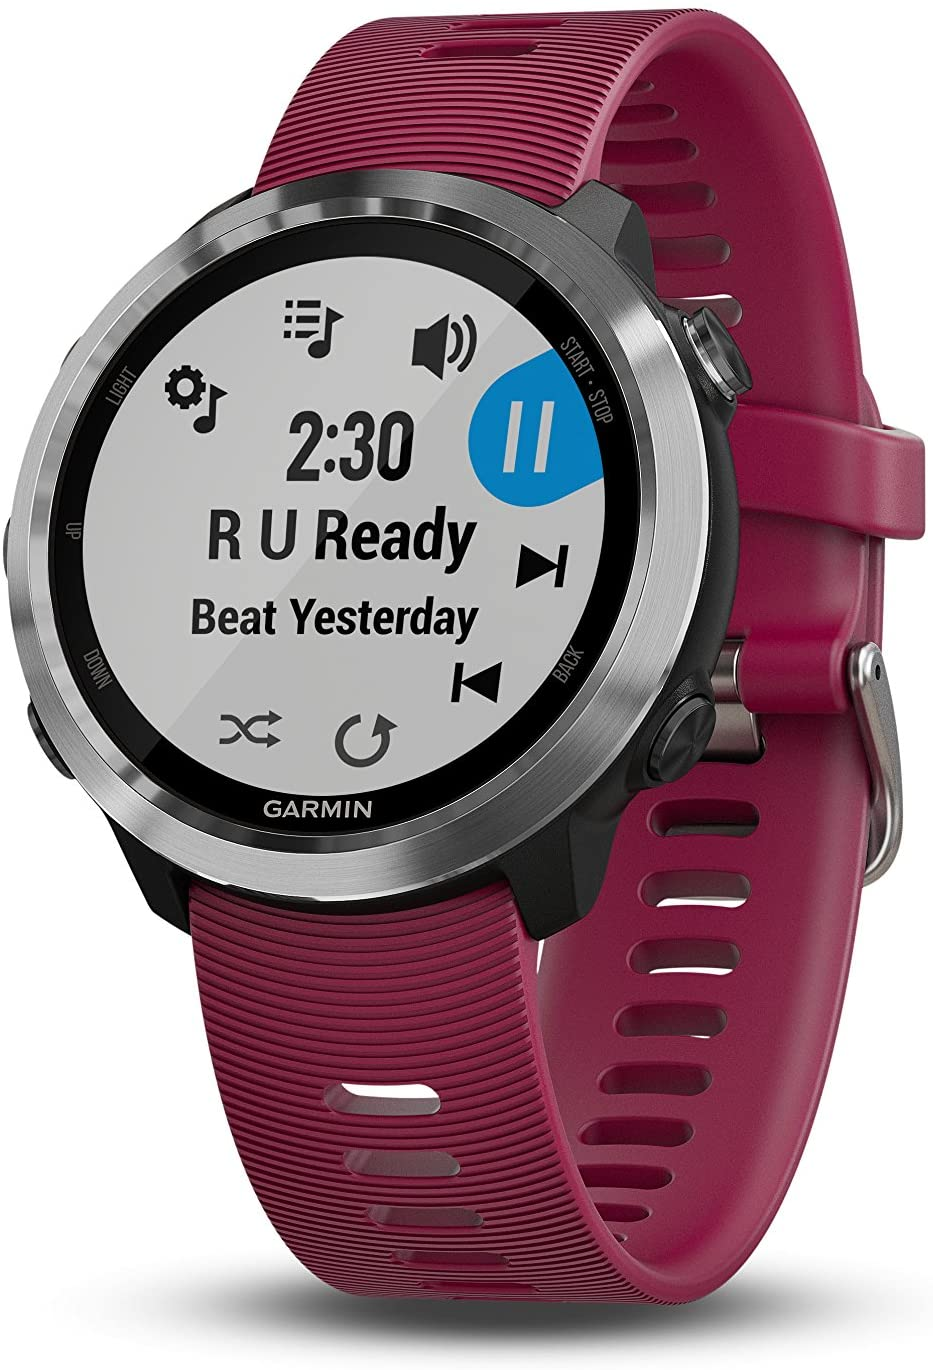 Garmin Forerunner 645 Music, Gps Running Watch with Pay Contactless Payments, Wrist-based Heart Rate and Music, Cerise